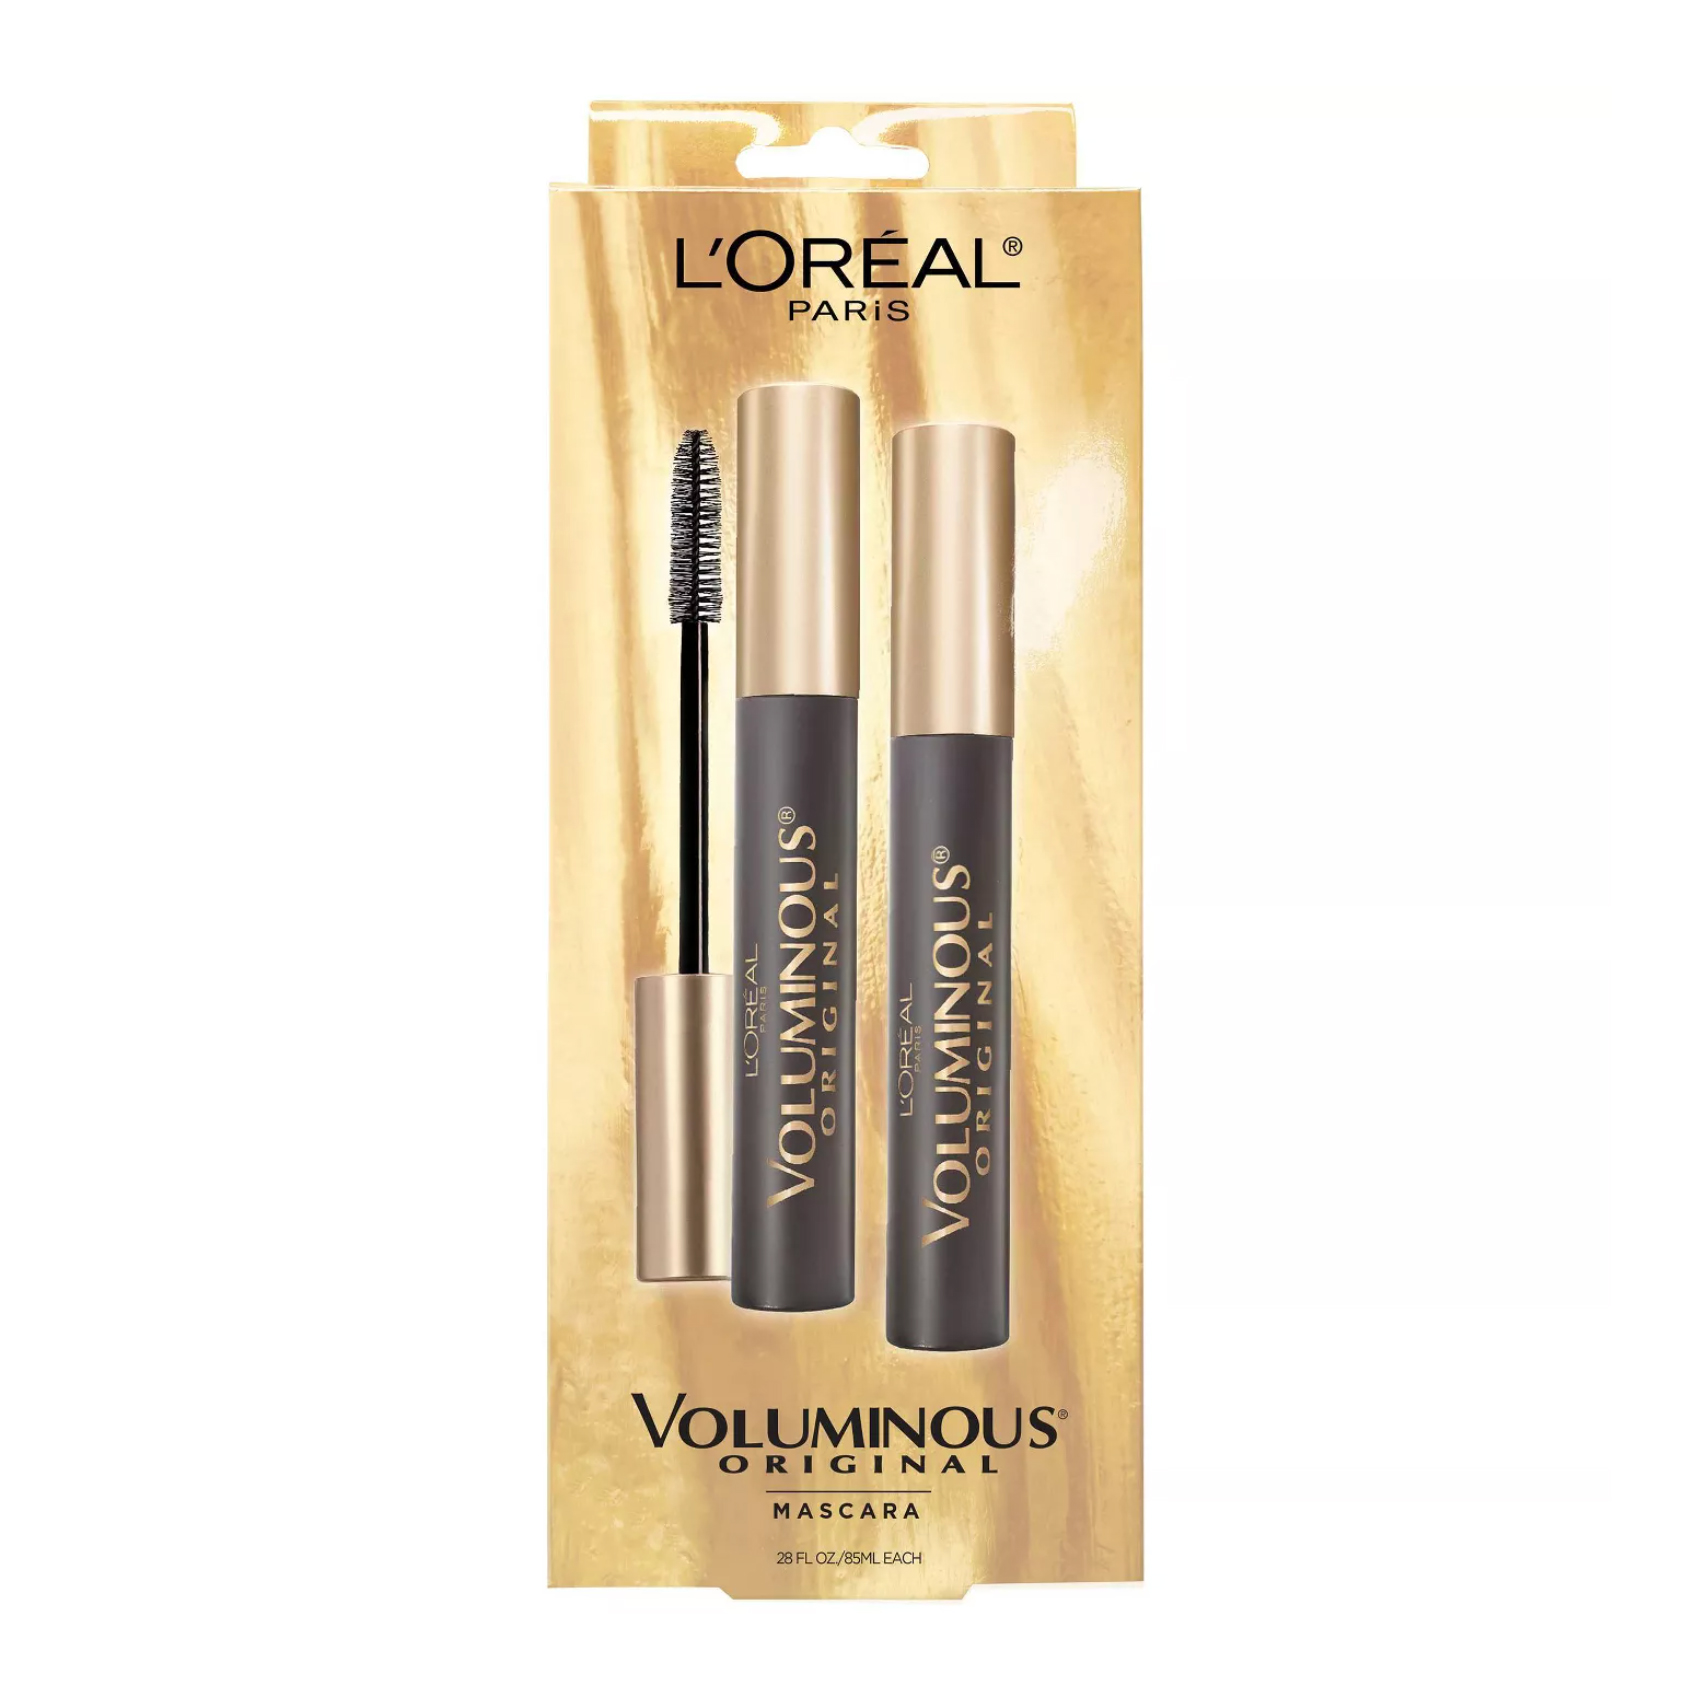 L'Oreal Paris Mascara Duo